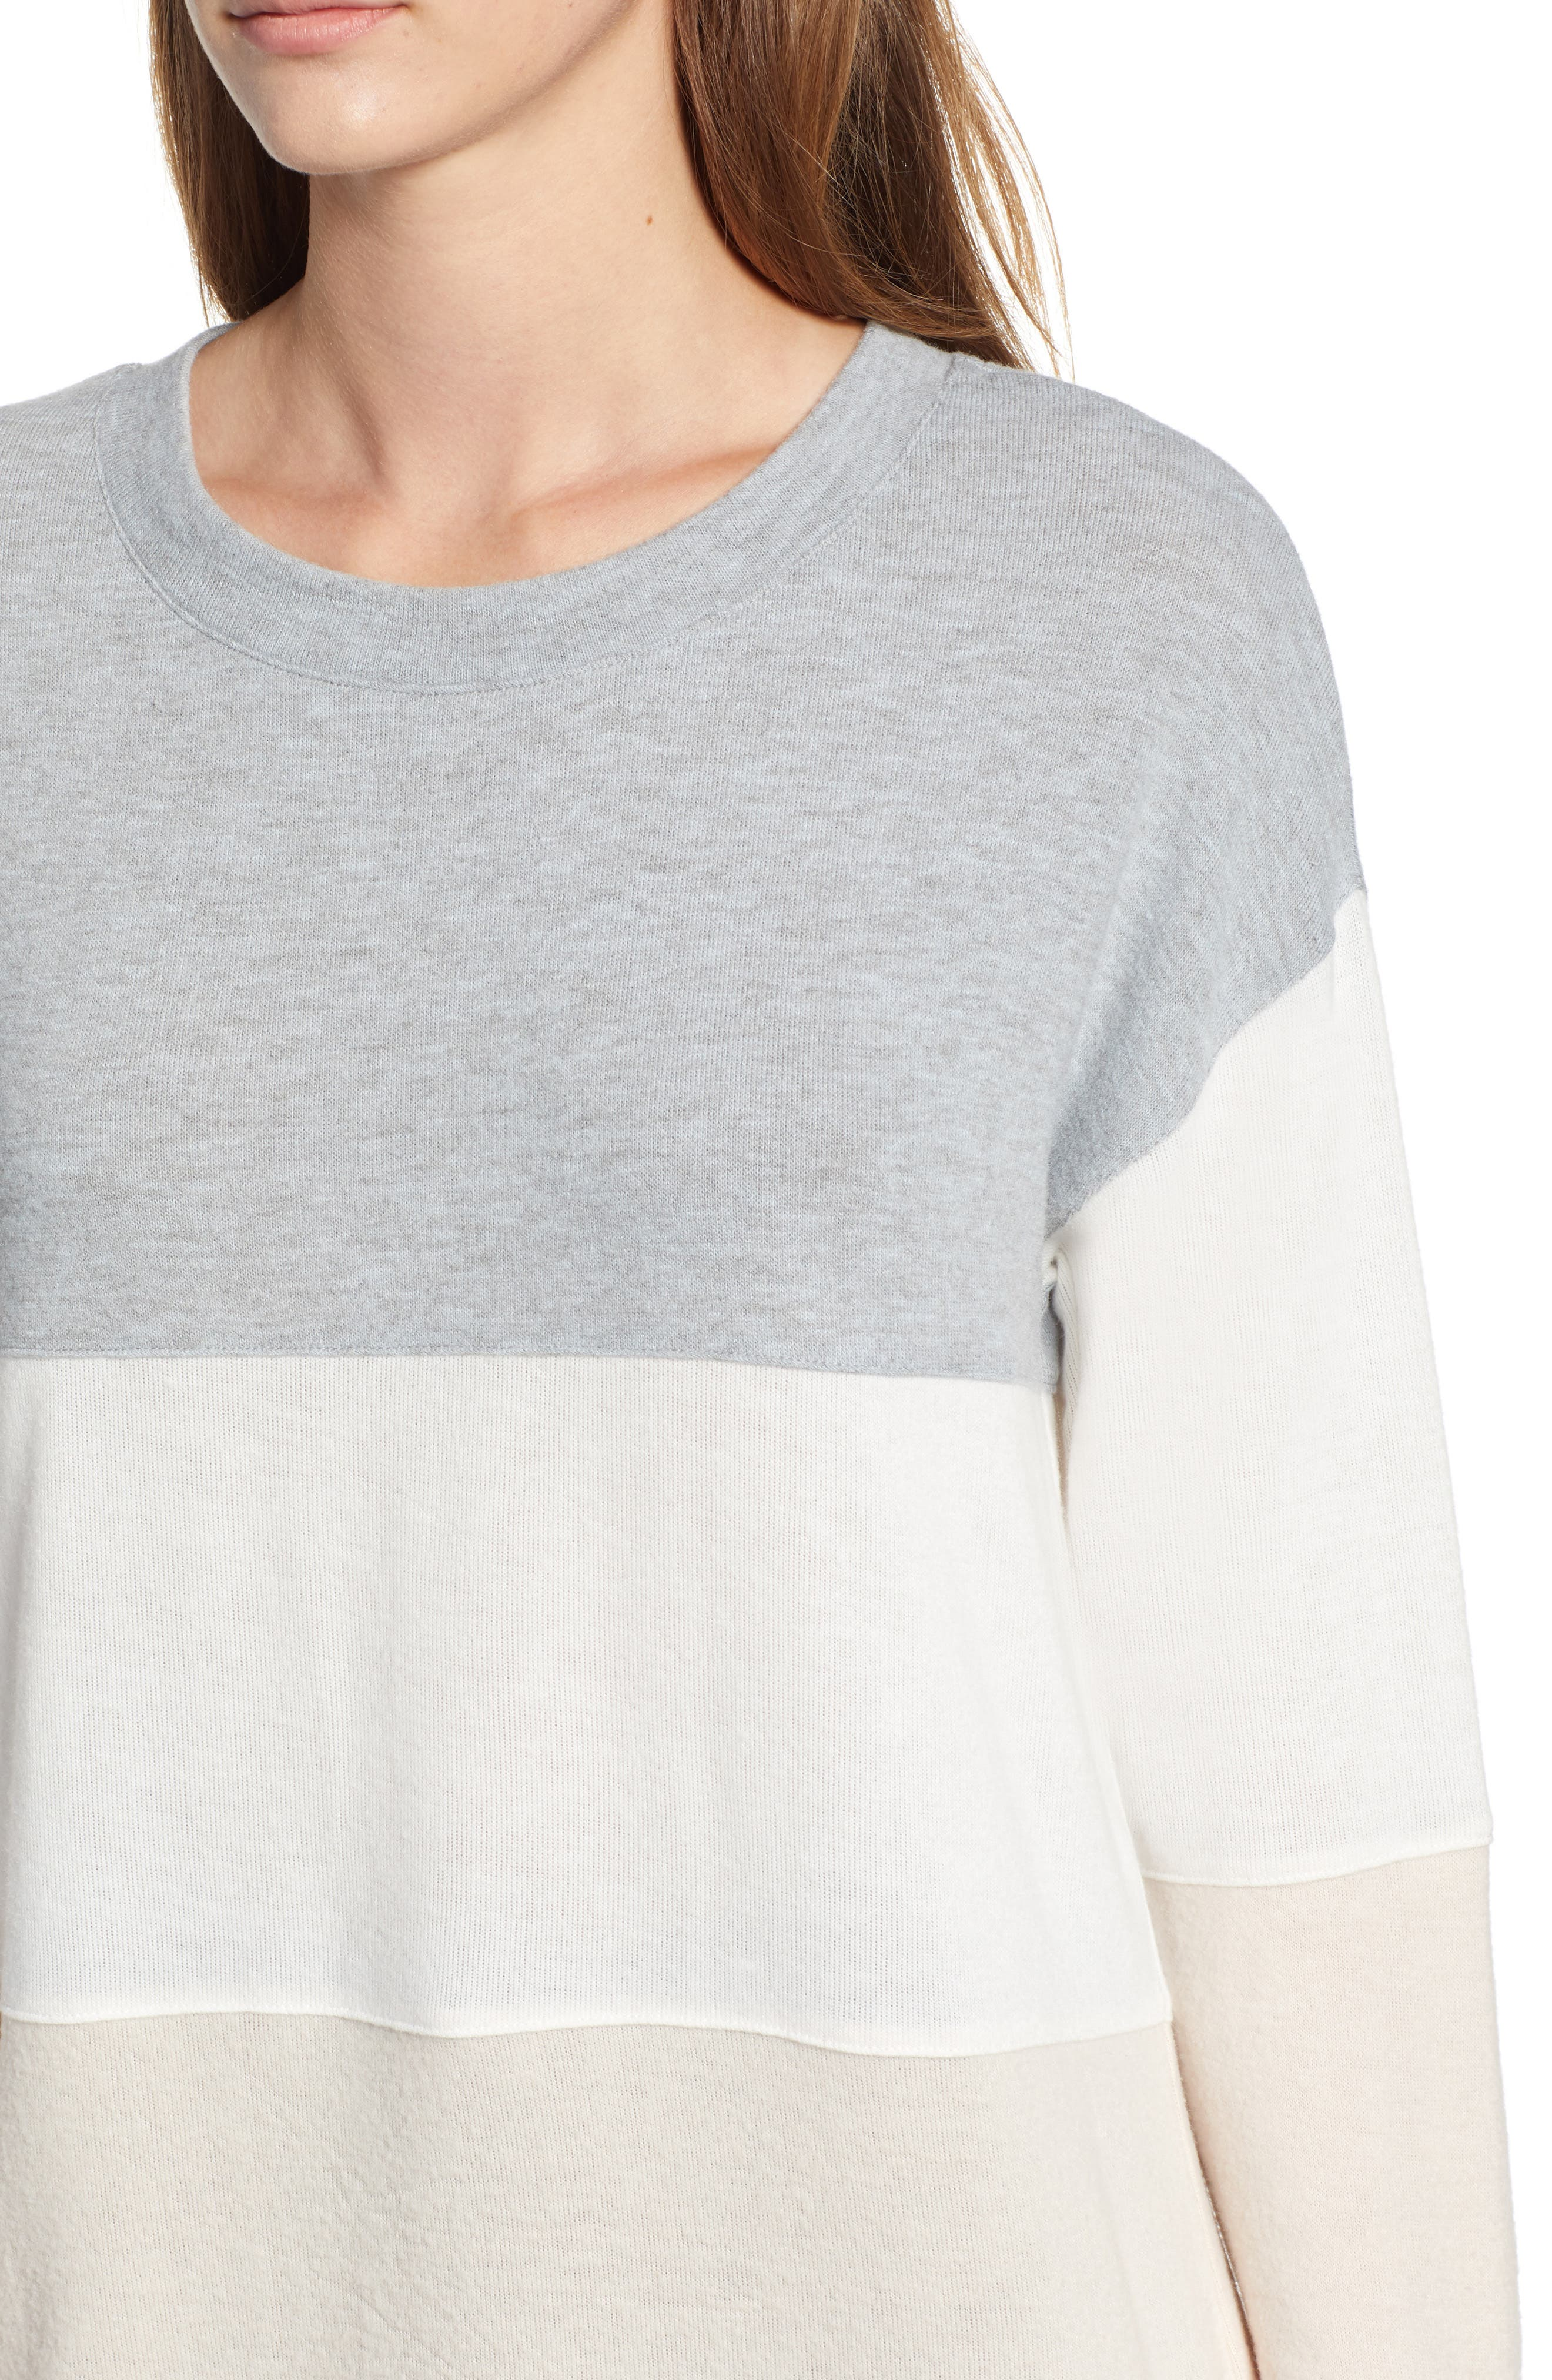 Colorblock Sweatshirt,                             Alternate thumbnail 4, color,                             GREY/ WHITE/ PINK